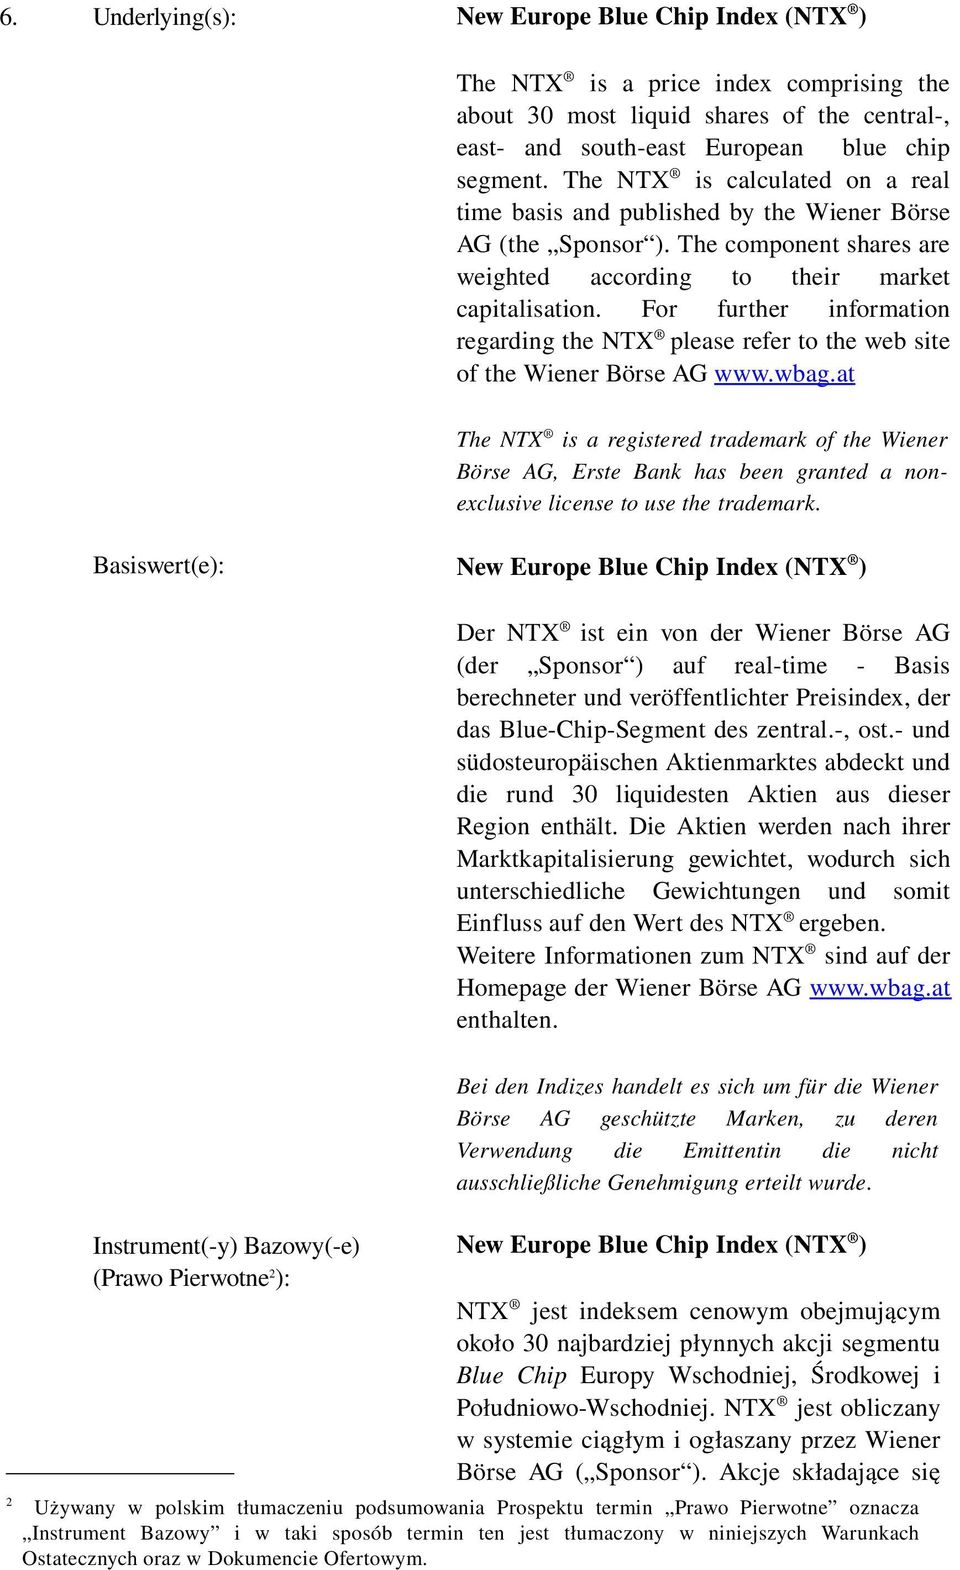 For further information regarding the NTX please refer to the web site of the Wiener Börse AG www.wbag.